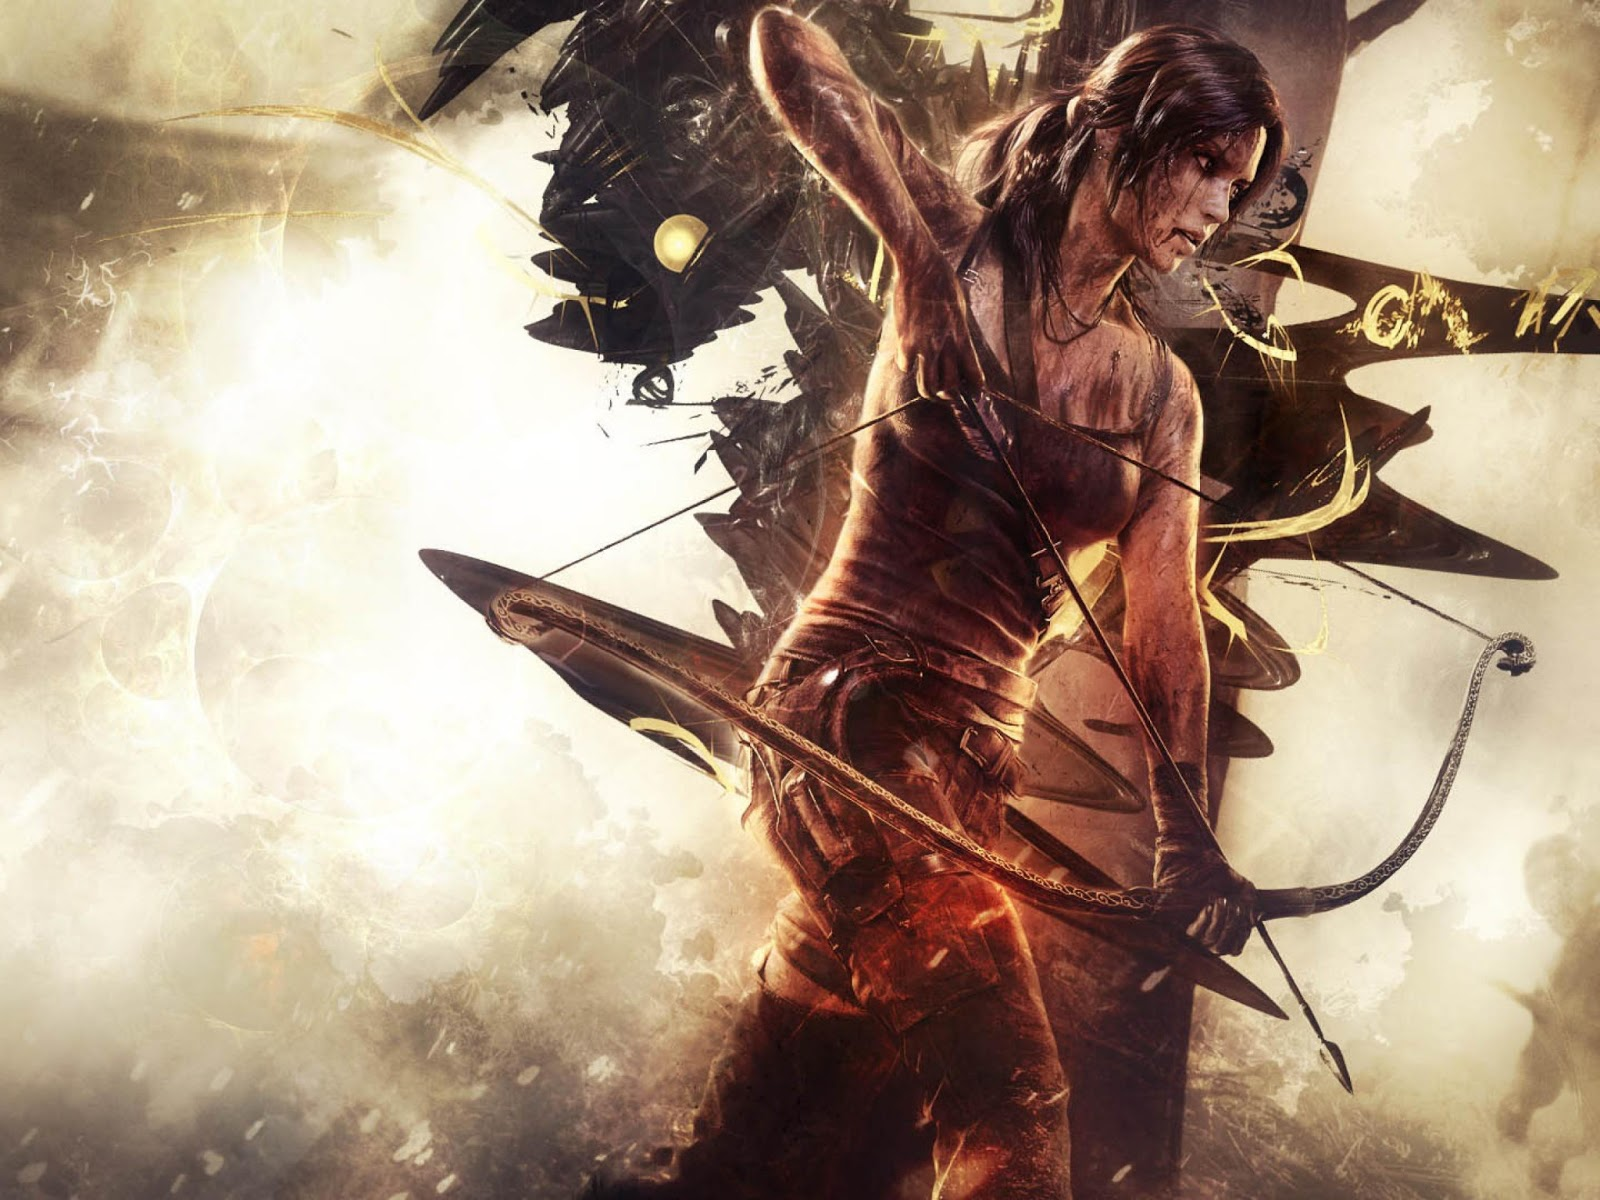 Wallpapers: Tomb Raider (2013)